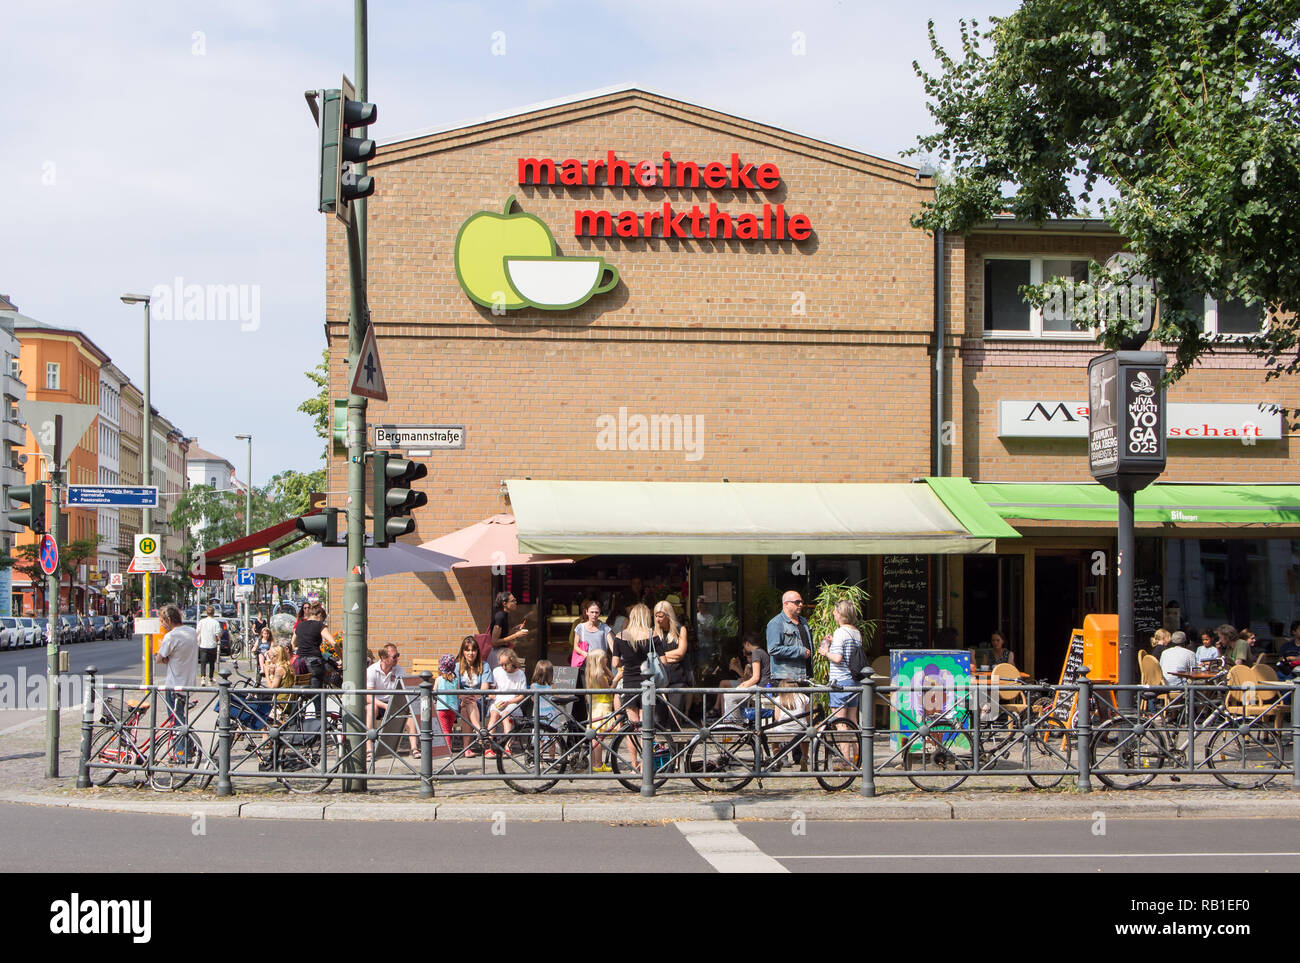 BERLIN, GERMANY - JULY 9, 2017: Tourists In Front of Marheineke Markthalle, Market In Berlin-Kreuzberg - Stock Image